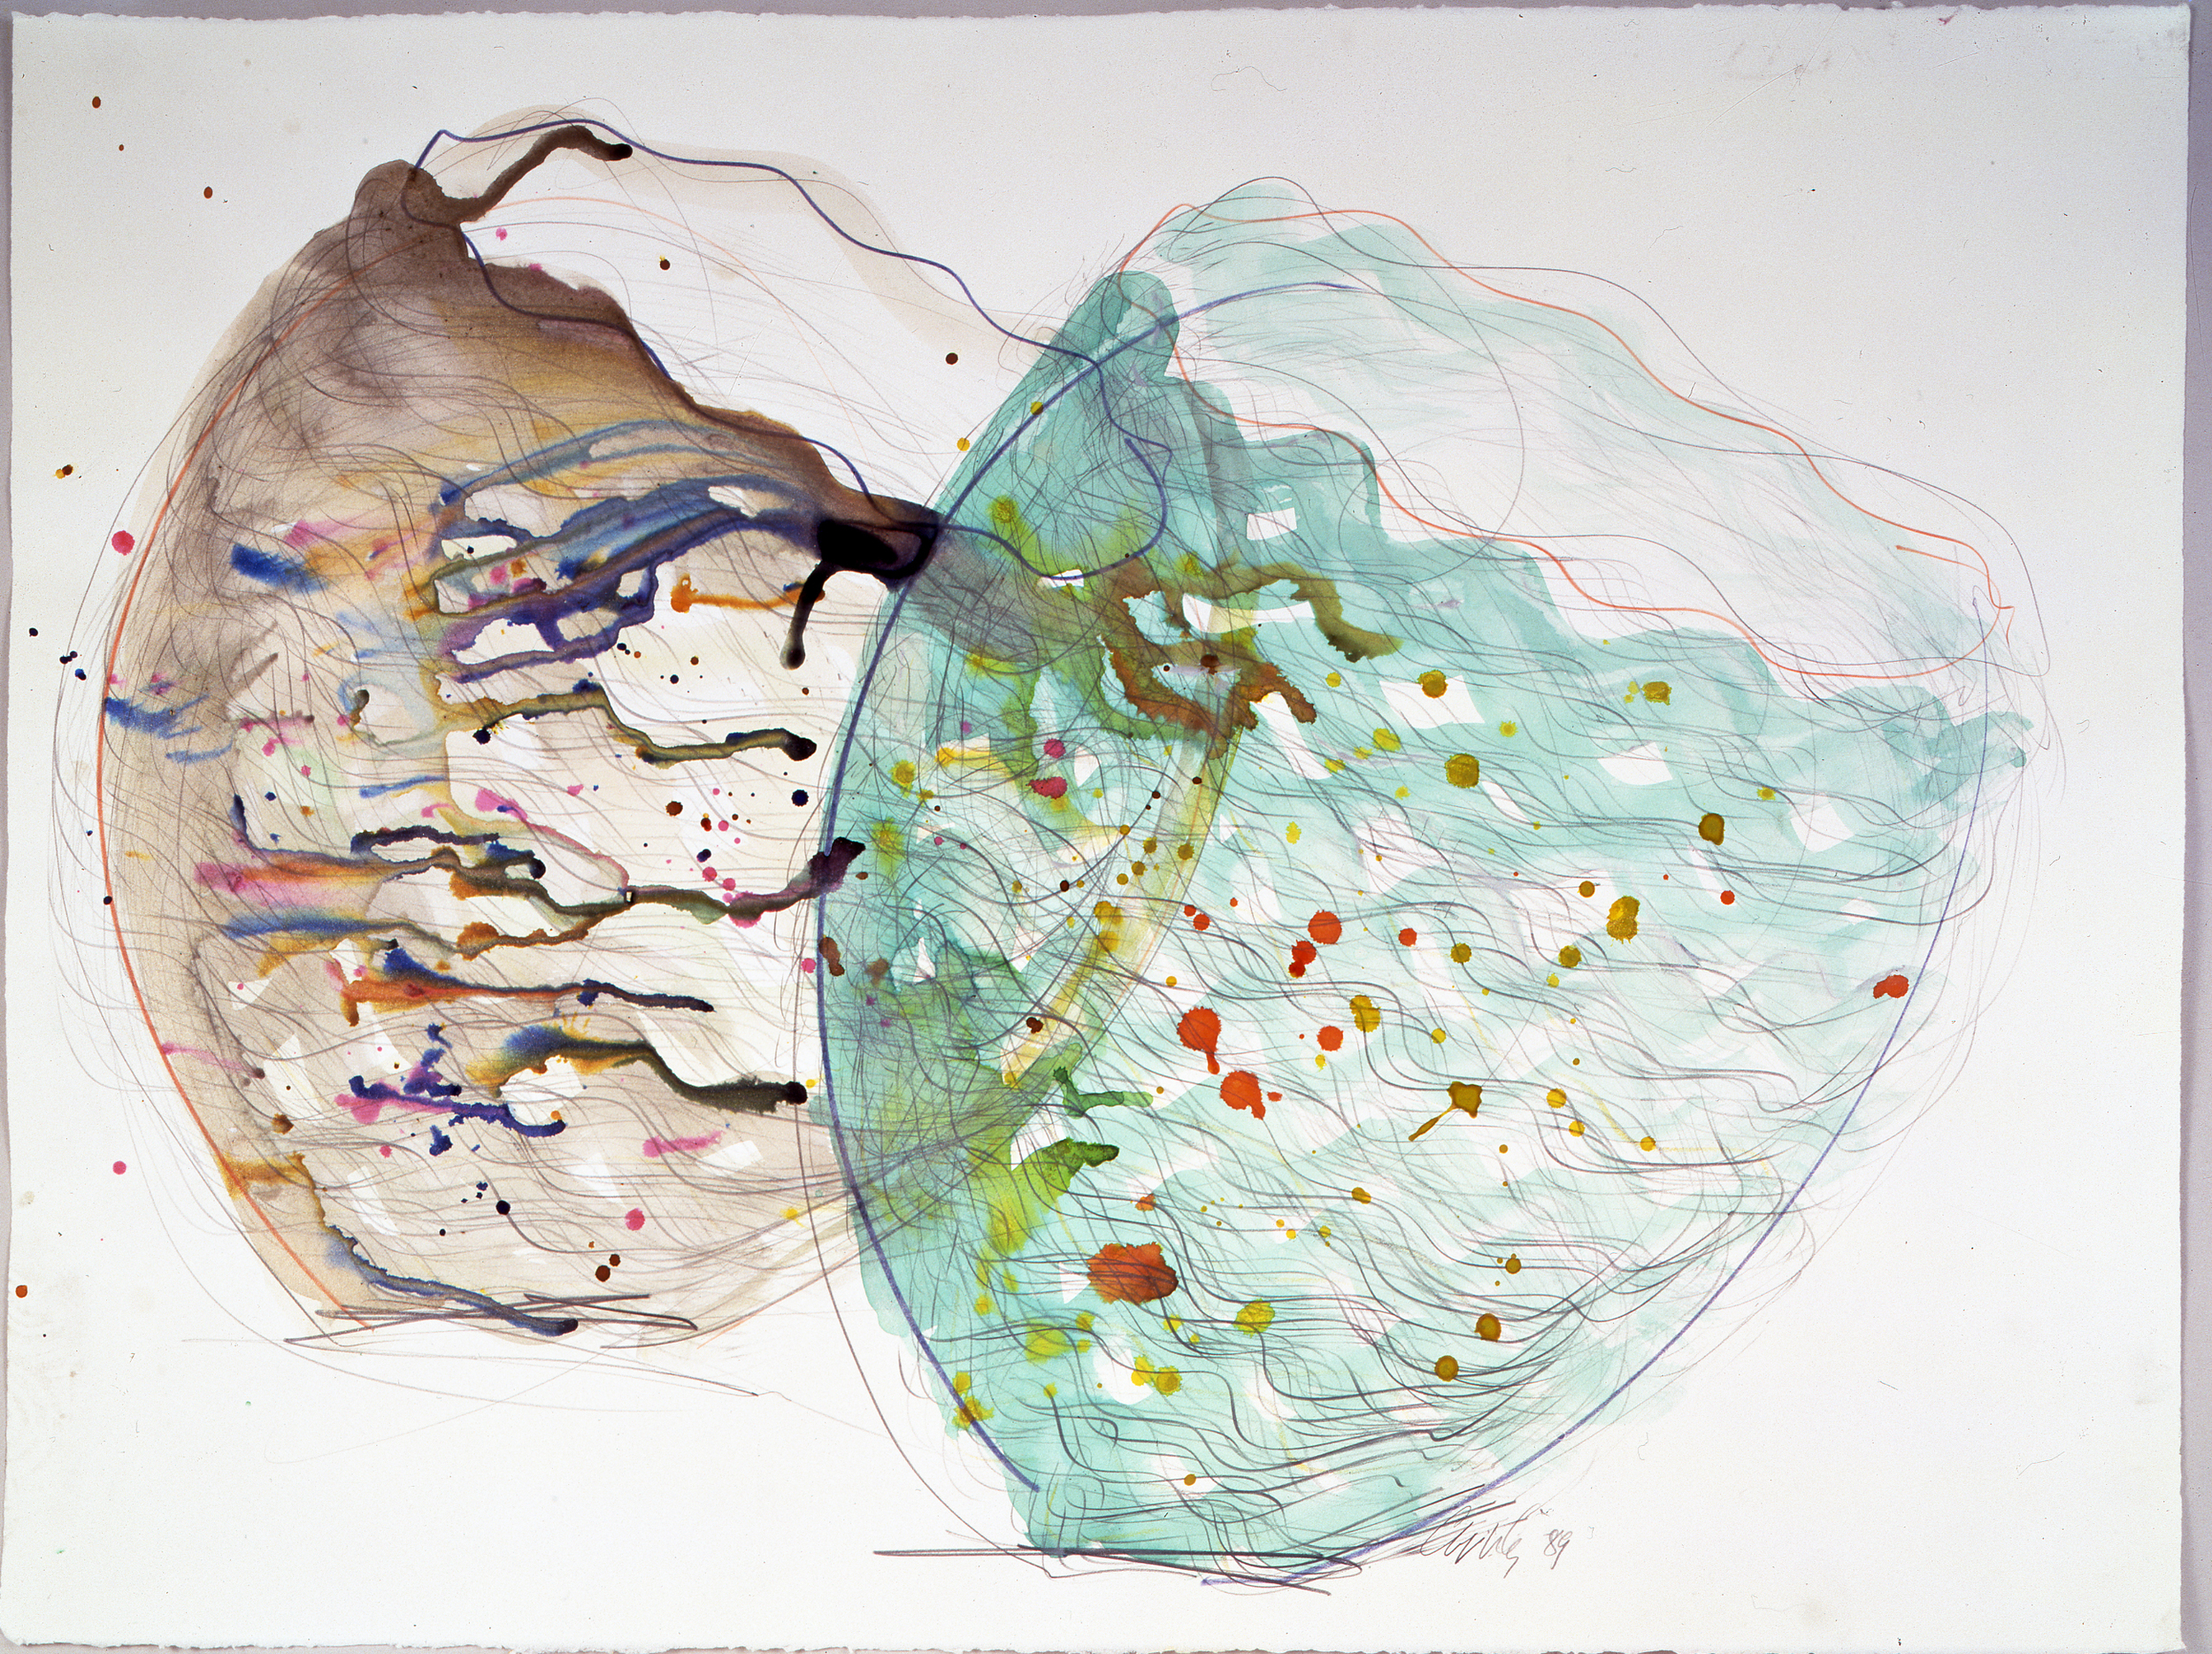 Dale Chihuly, Niijima Drawing #52, (1989, watercolor and graphiteon paper, 22 x 30 inches), DC.375